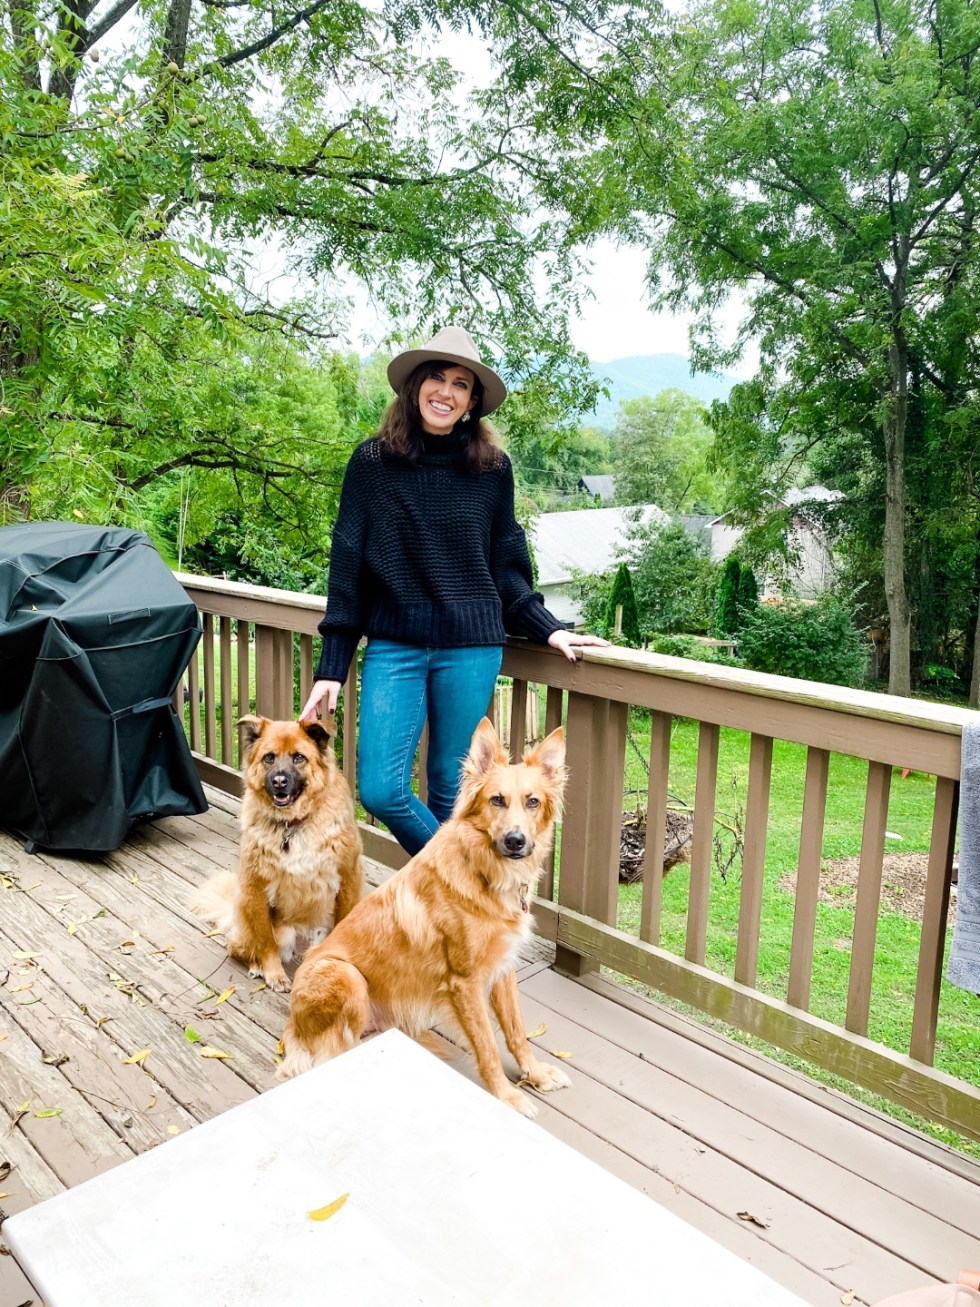 2020, a Year in Review: our Travel Adventures - I'm Fixin' To - @imfixintoblog |Year in Review by popular NC travel blog, I'm Fixin' To: image of a woman standing on a wooden deck with her two dogs.